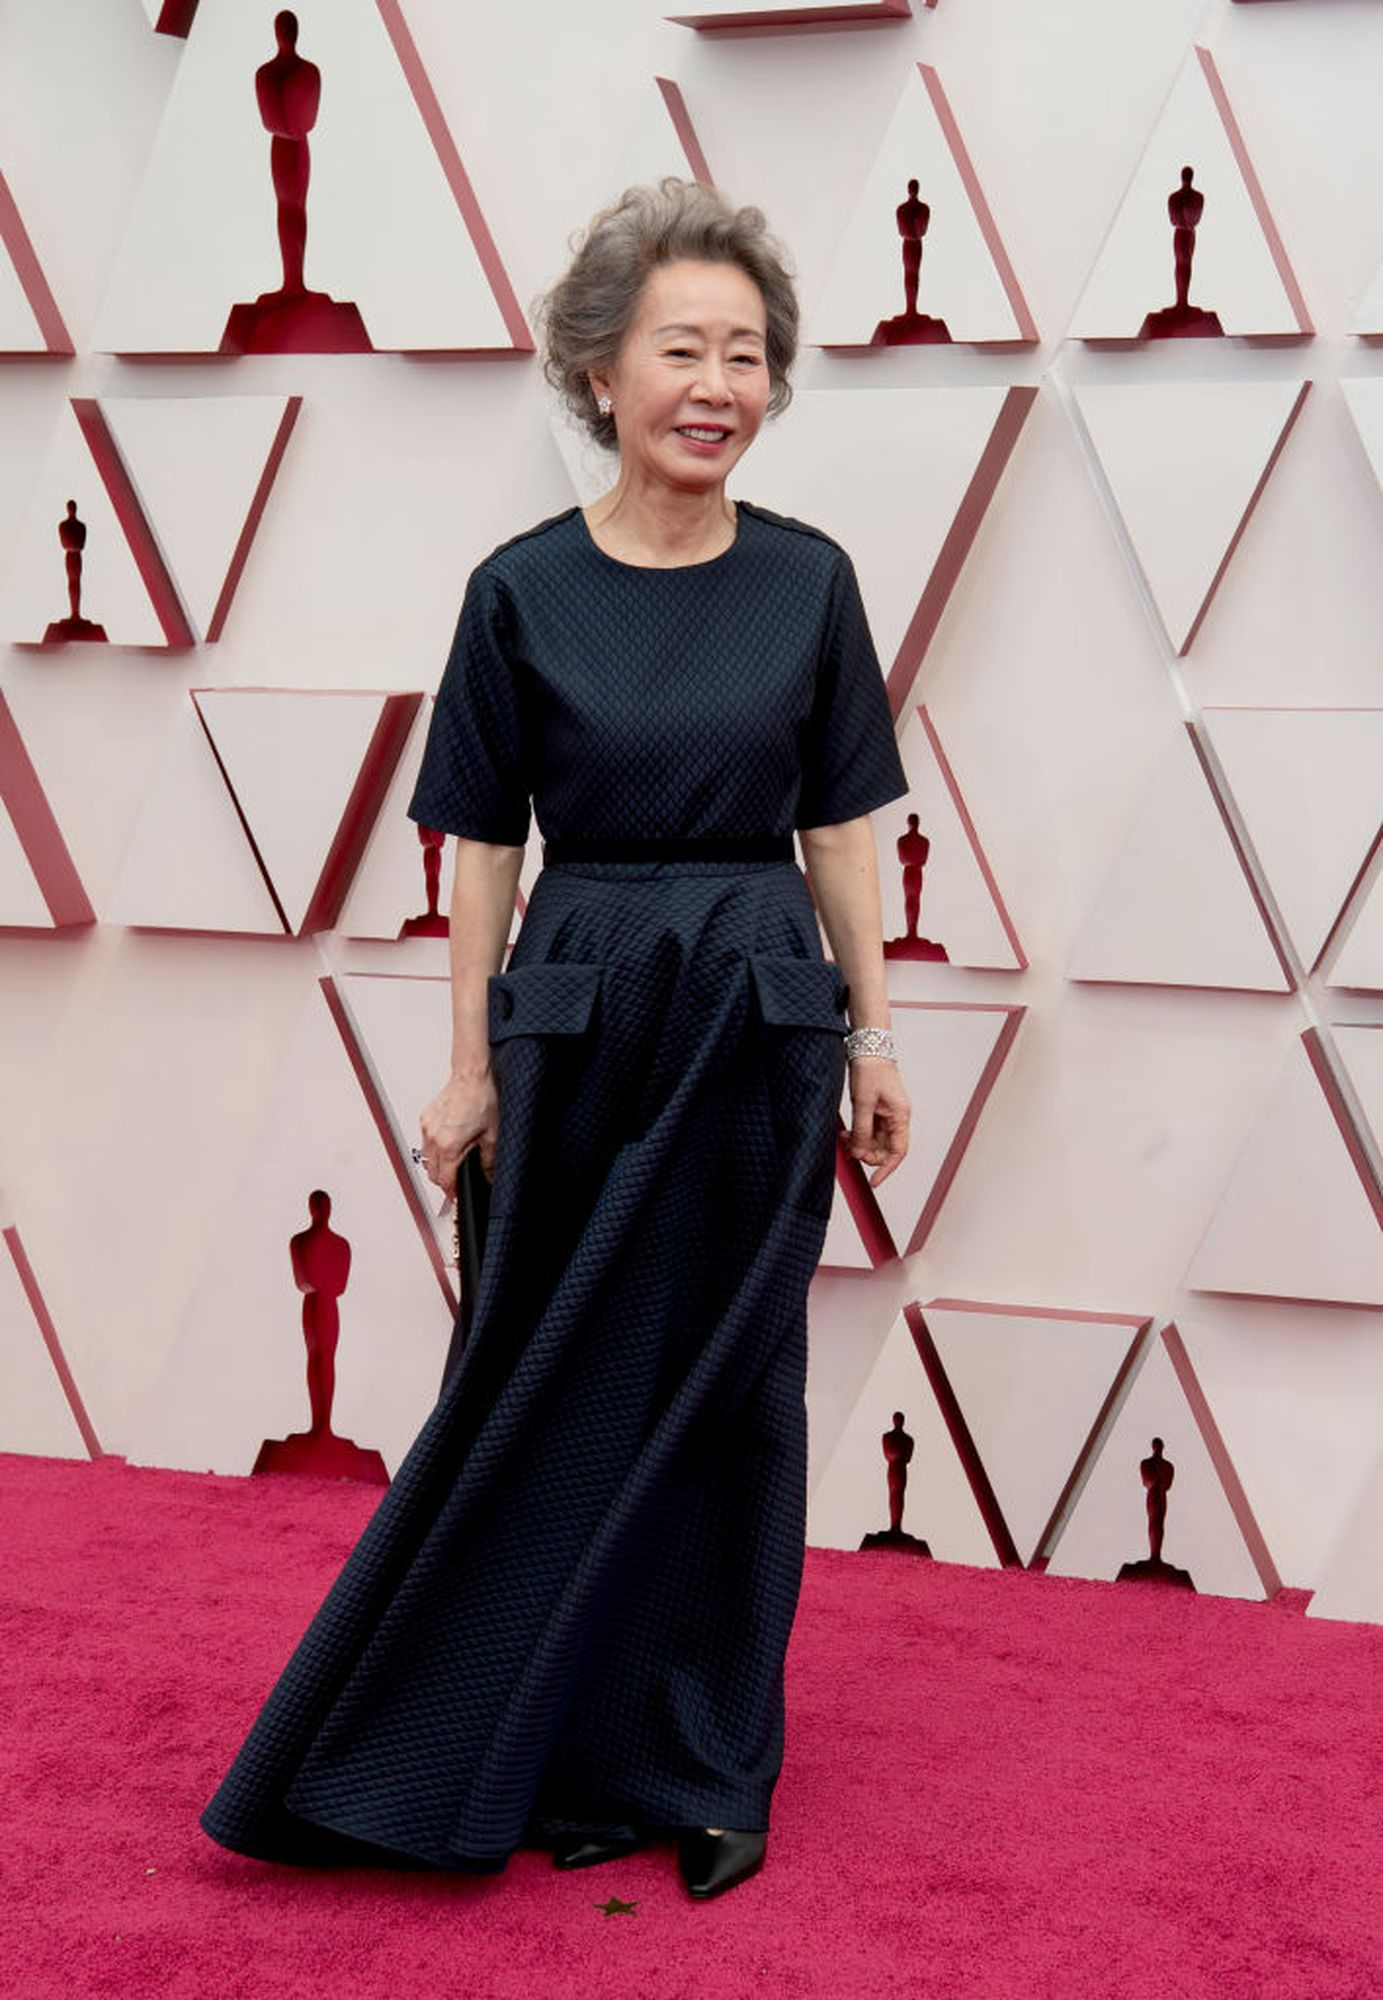 The Oscars red carpet was a happy return to personal events